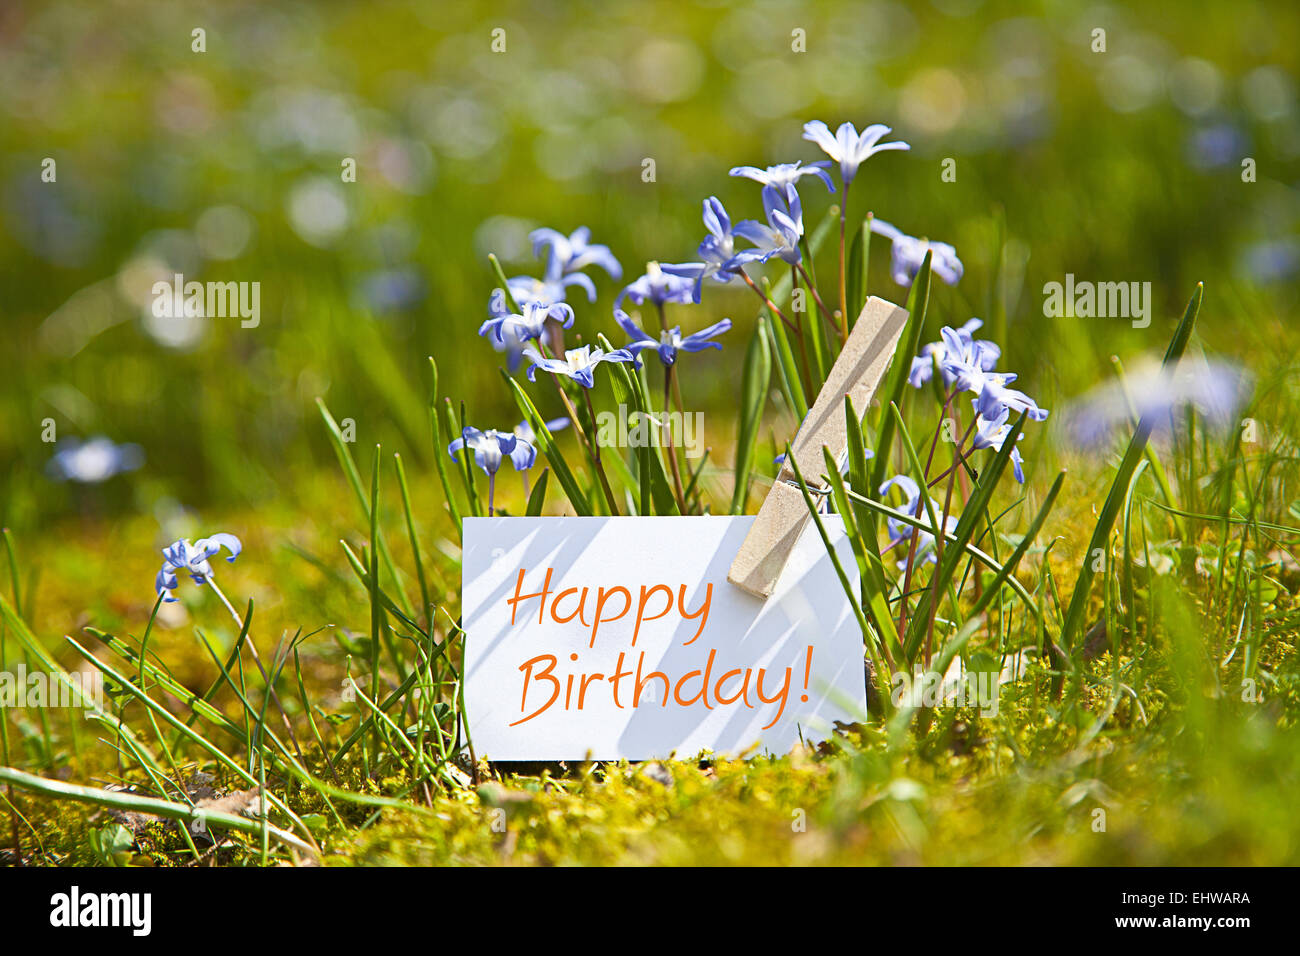 Happy birthday with spring flowers stock photo 79847918 alamy happy birthday with spring flowers izmirmasajfo